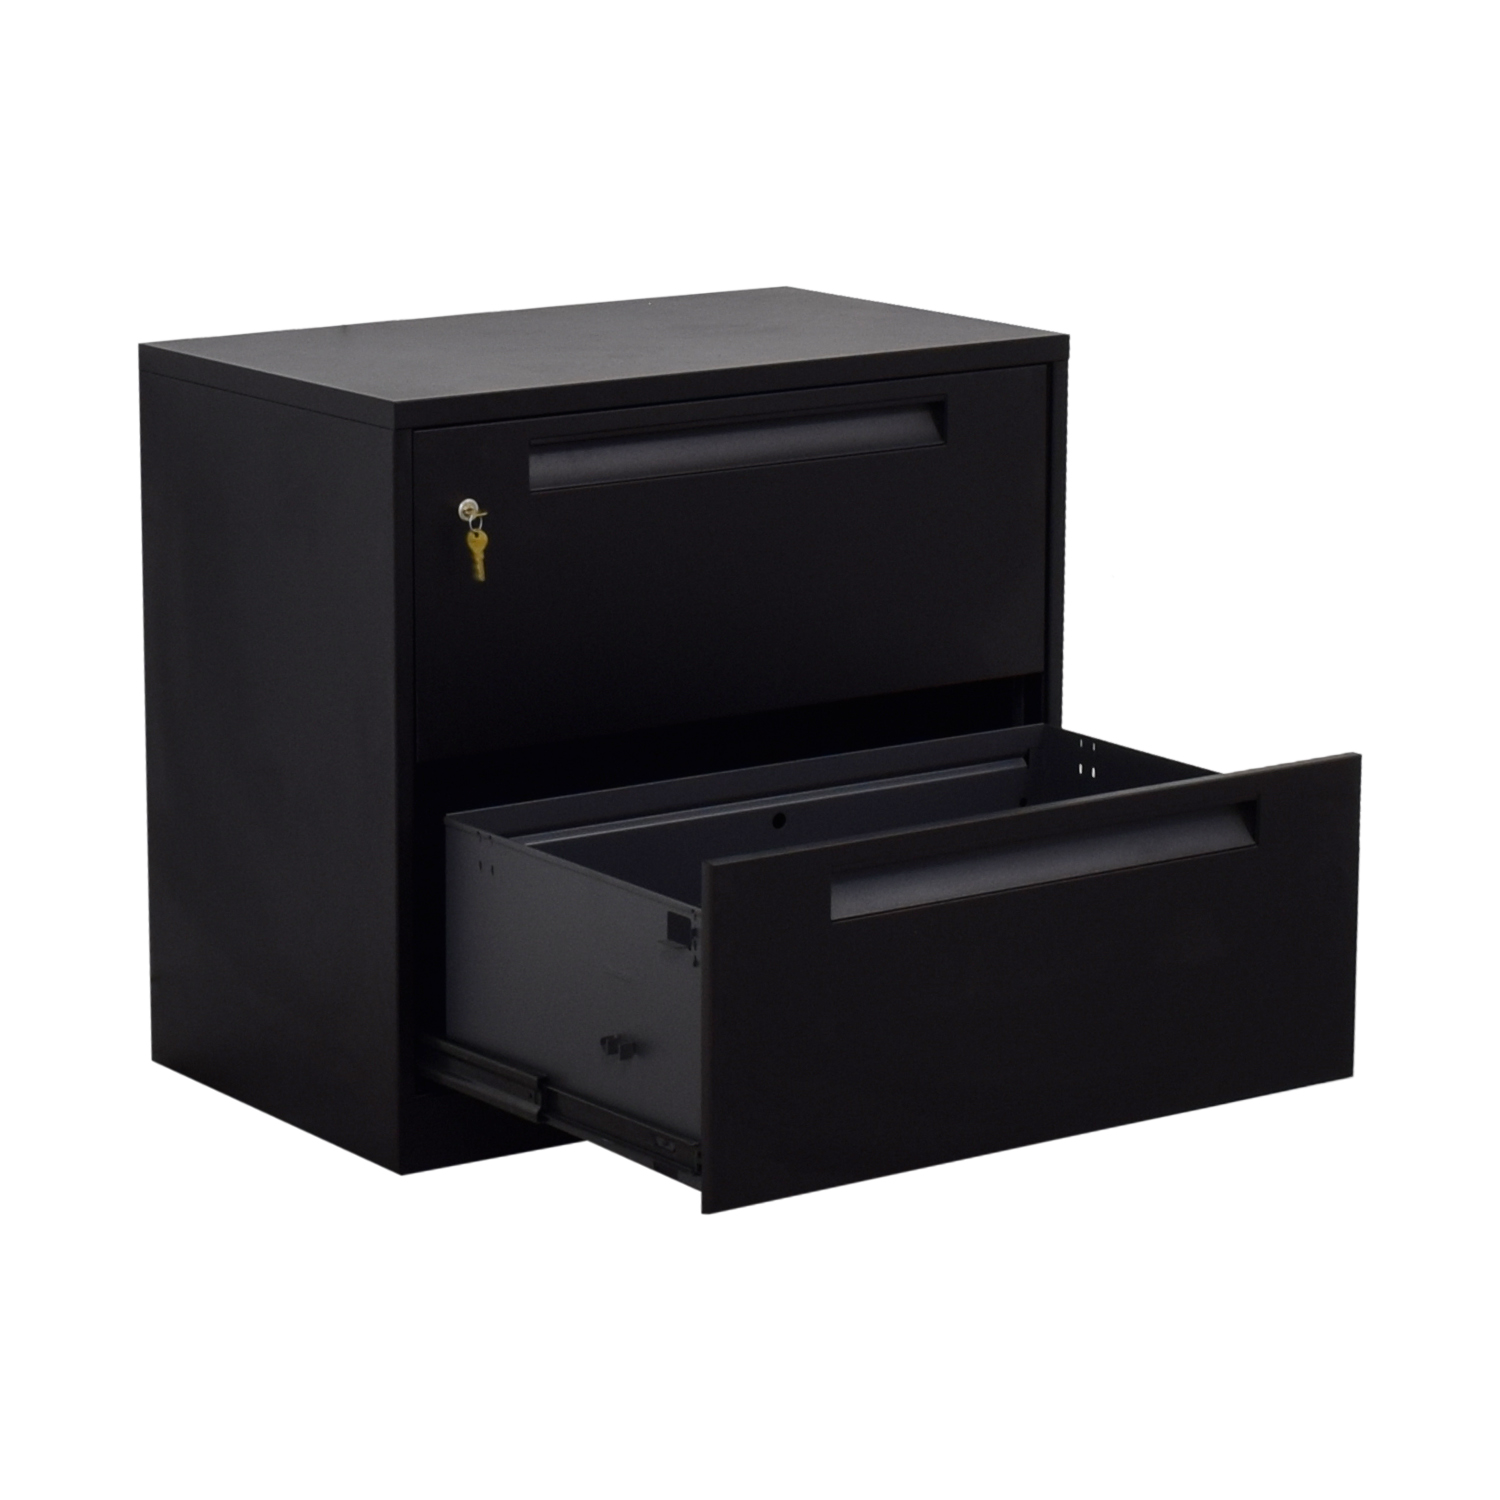 shop Steelcase Black Lateral Two-Drawer File Cabinet Steelcase